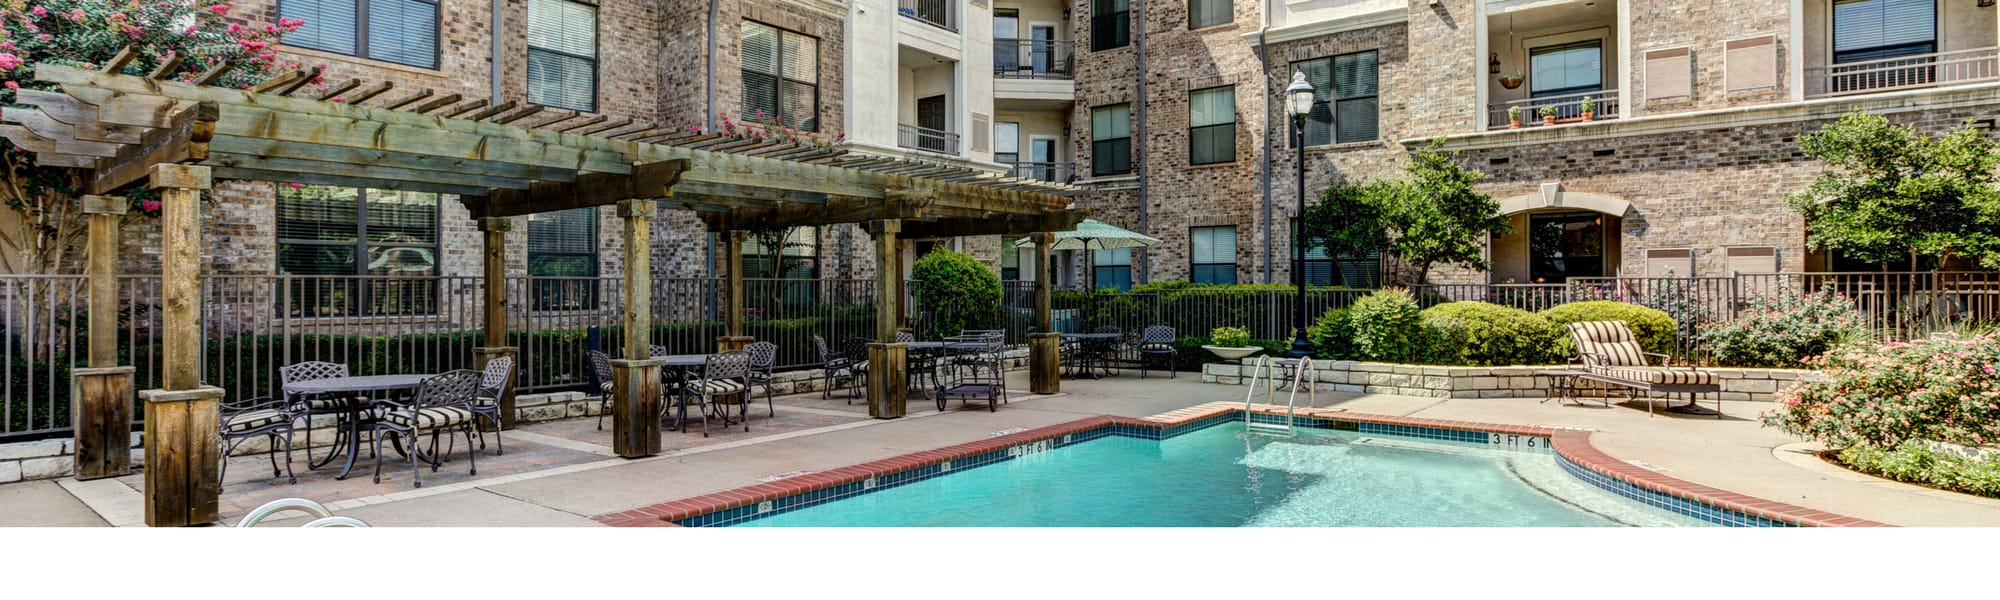 Exceptional senior living in Keller, TX.